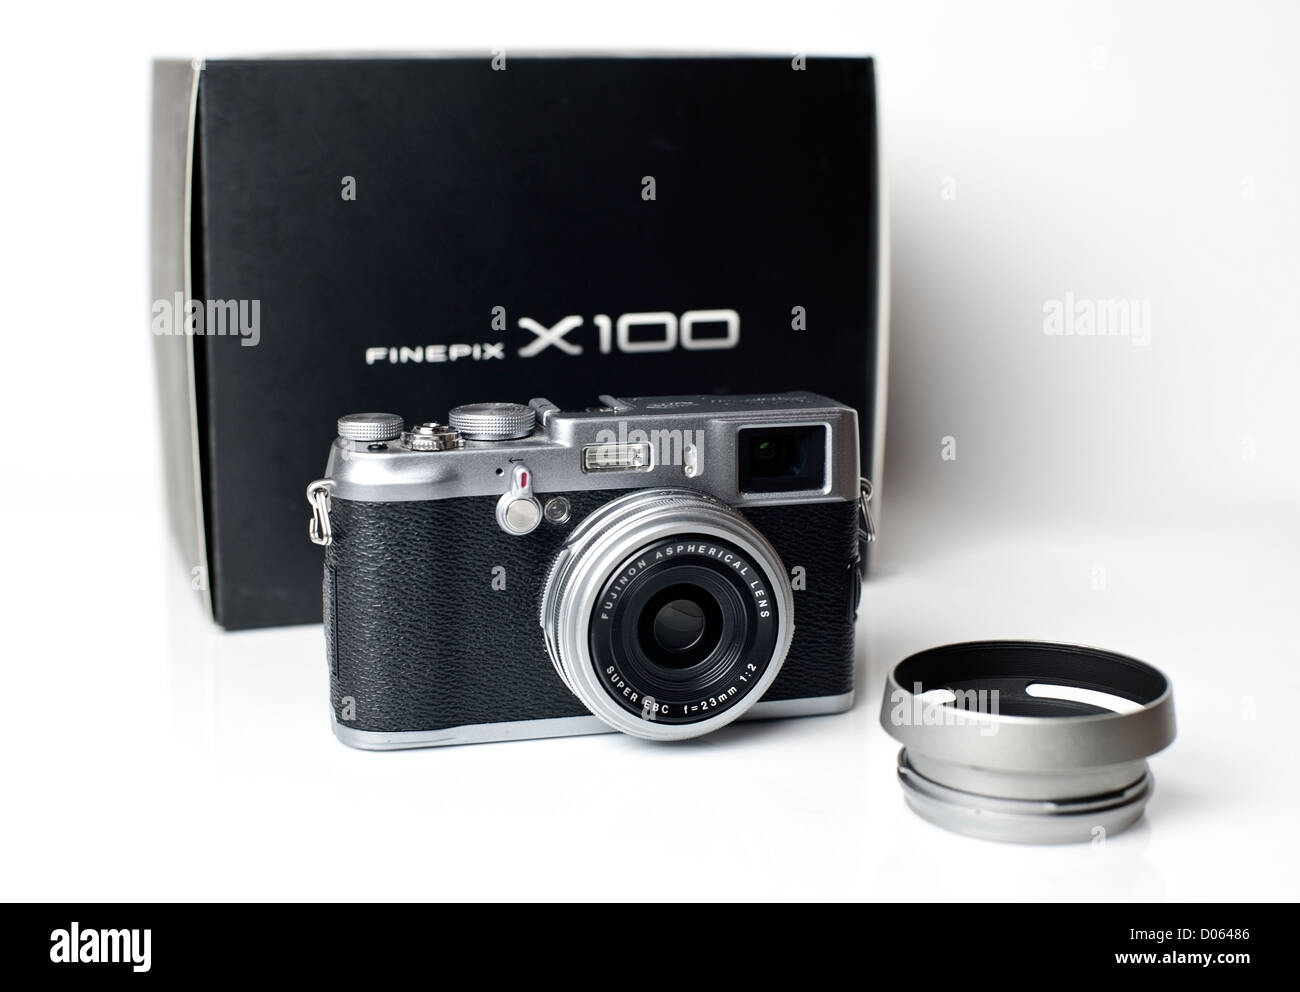 Fugi Fine Pix X100 camera front view with after market lens hood - Stock Image